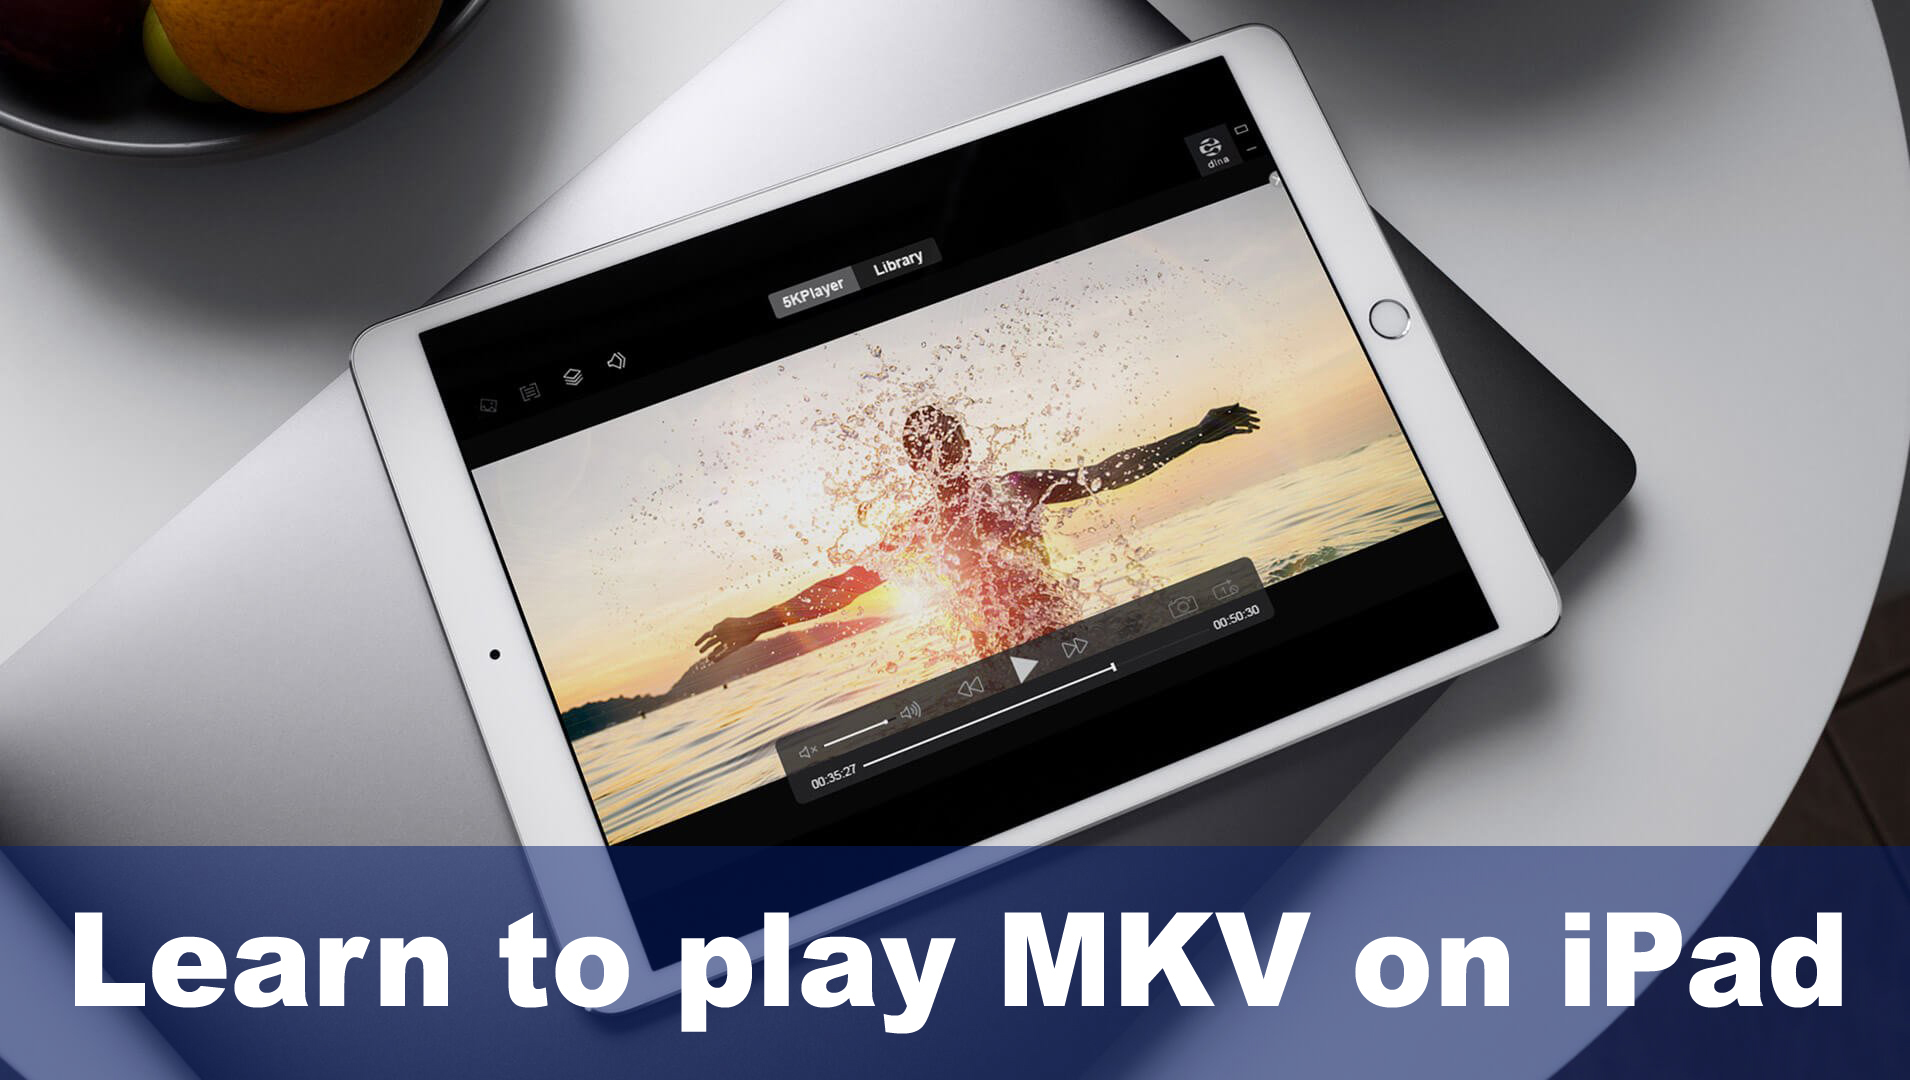 mkv on iPad